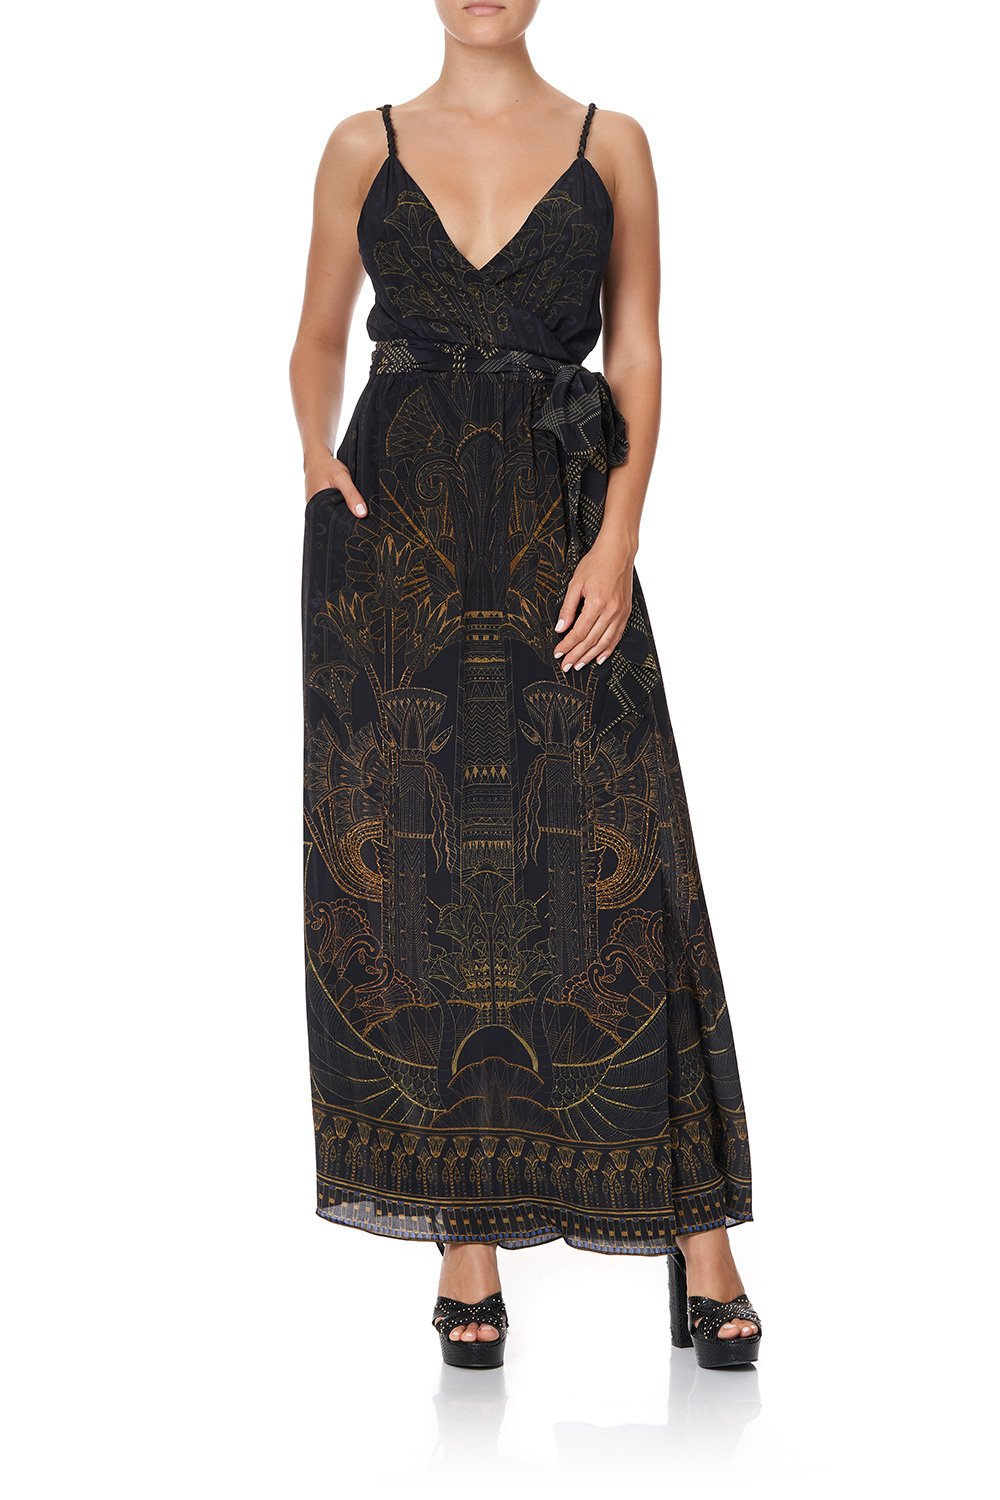 WRAP DRESS WITH TWIST STRAPS COBRA KING